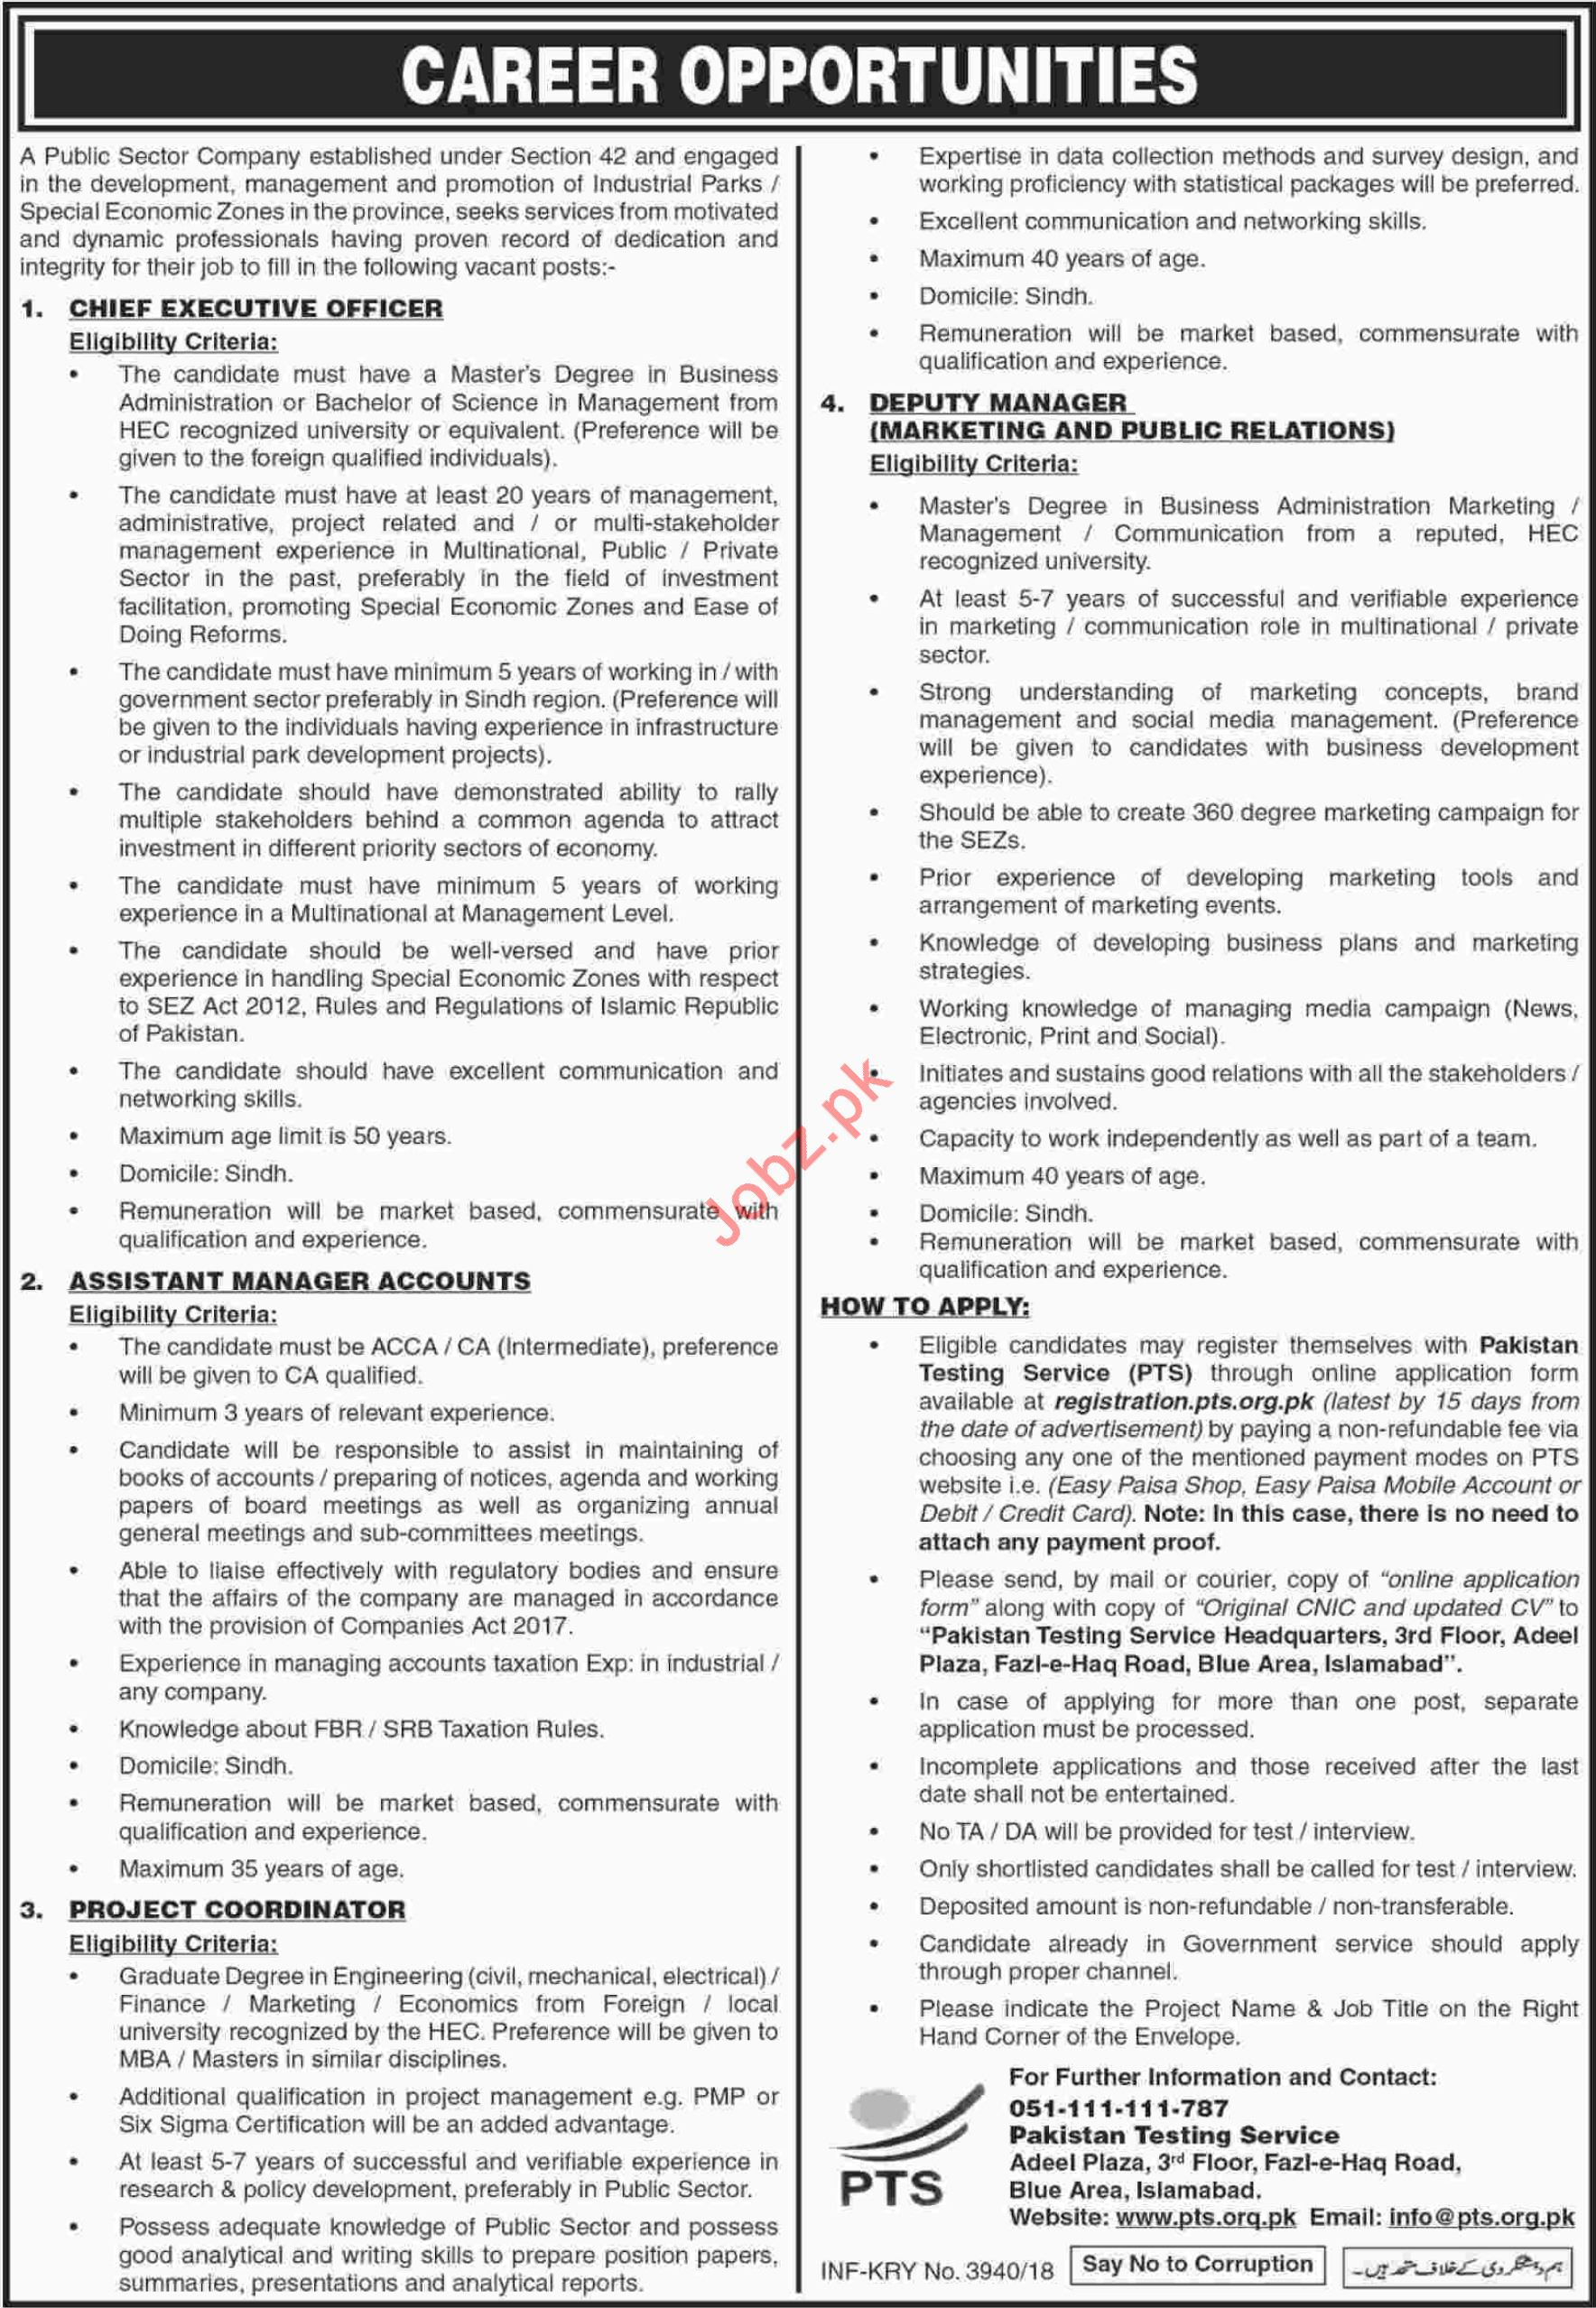 Public Sector Company Sindh Jobs 2018 for Managers